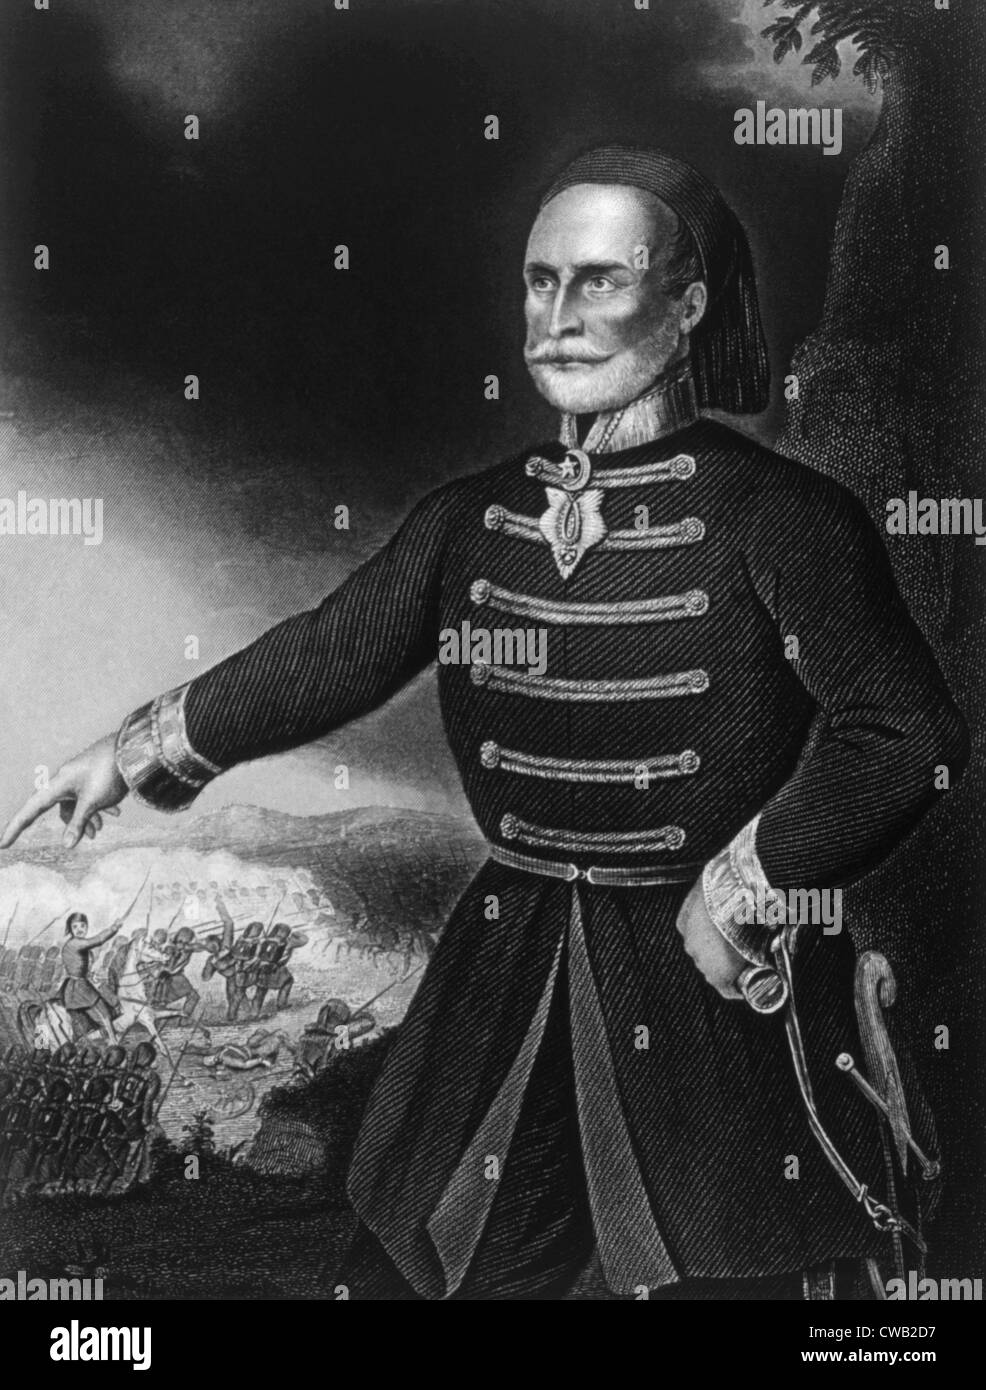 Omar Pasha (1806-1871), commander of the Turkish army during the Crimean War - Stock Image